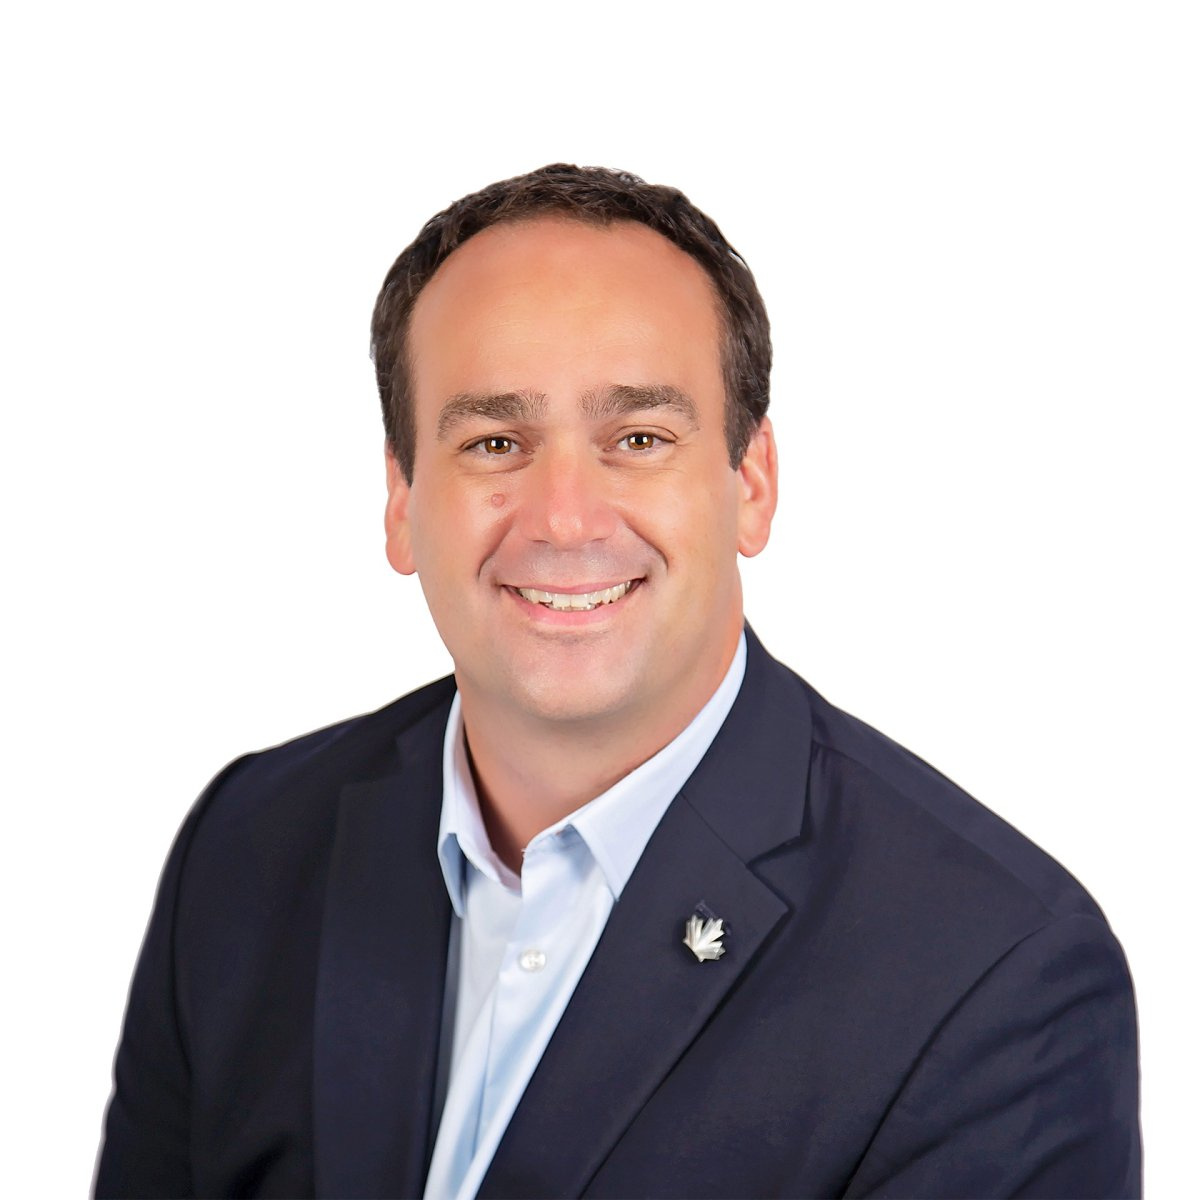 As one decade ends and another begins, MP for Kingston and the Islands Mark Gerretsen reflects on his accomplishments, his misses and talks about his hopes for the future of the region.